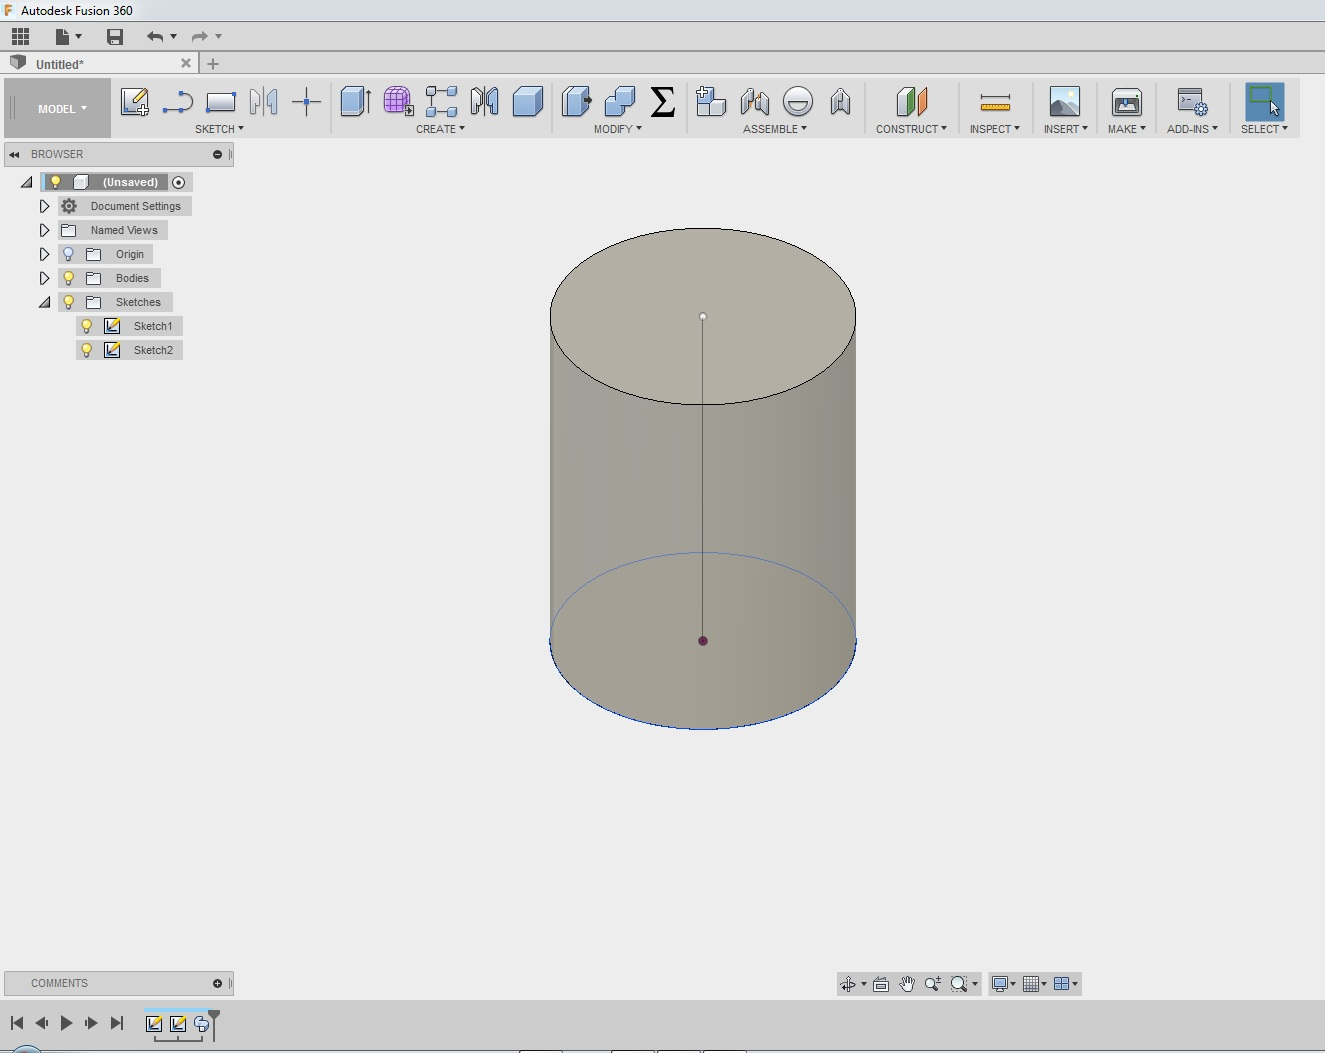 How to extrude along a path - Autodesk Community- Fusion 360